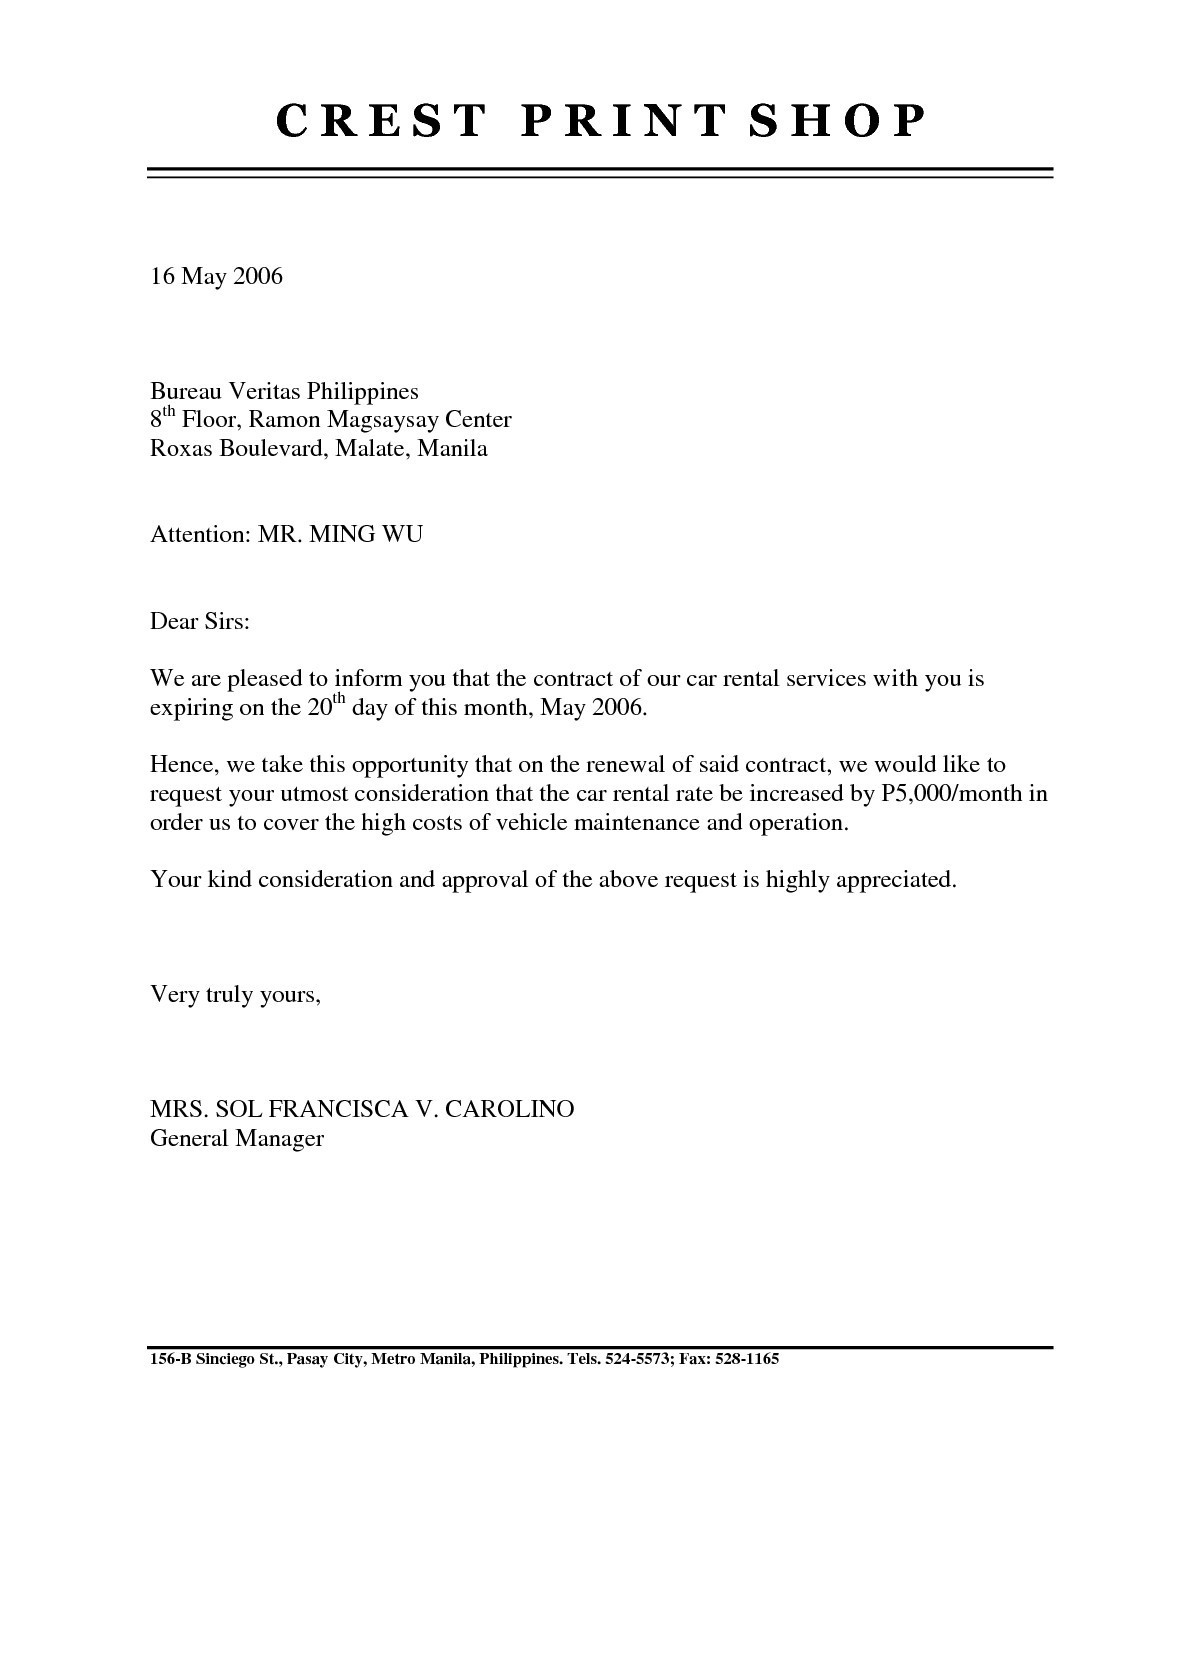 lease renewal letter template example-Tenancy Agreement Renewal Template Awesome Od Renewal Letter Sample Archives Codeshaker Co Best Renewal Lease 4-i